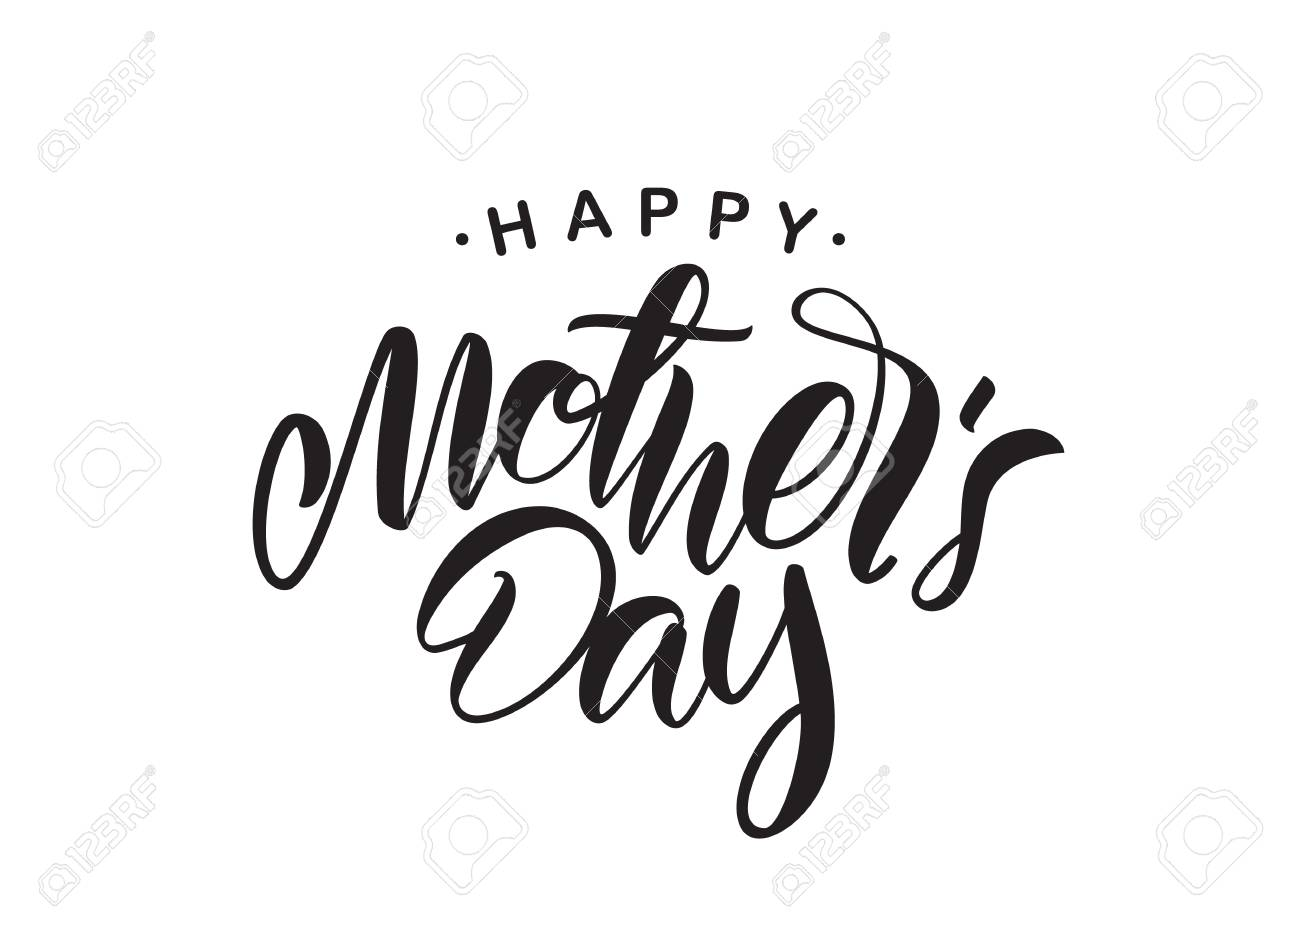 Vector illustration: Handwritten type lettering of Happy Mother's Day isolated on white background. - 97633667